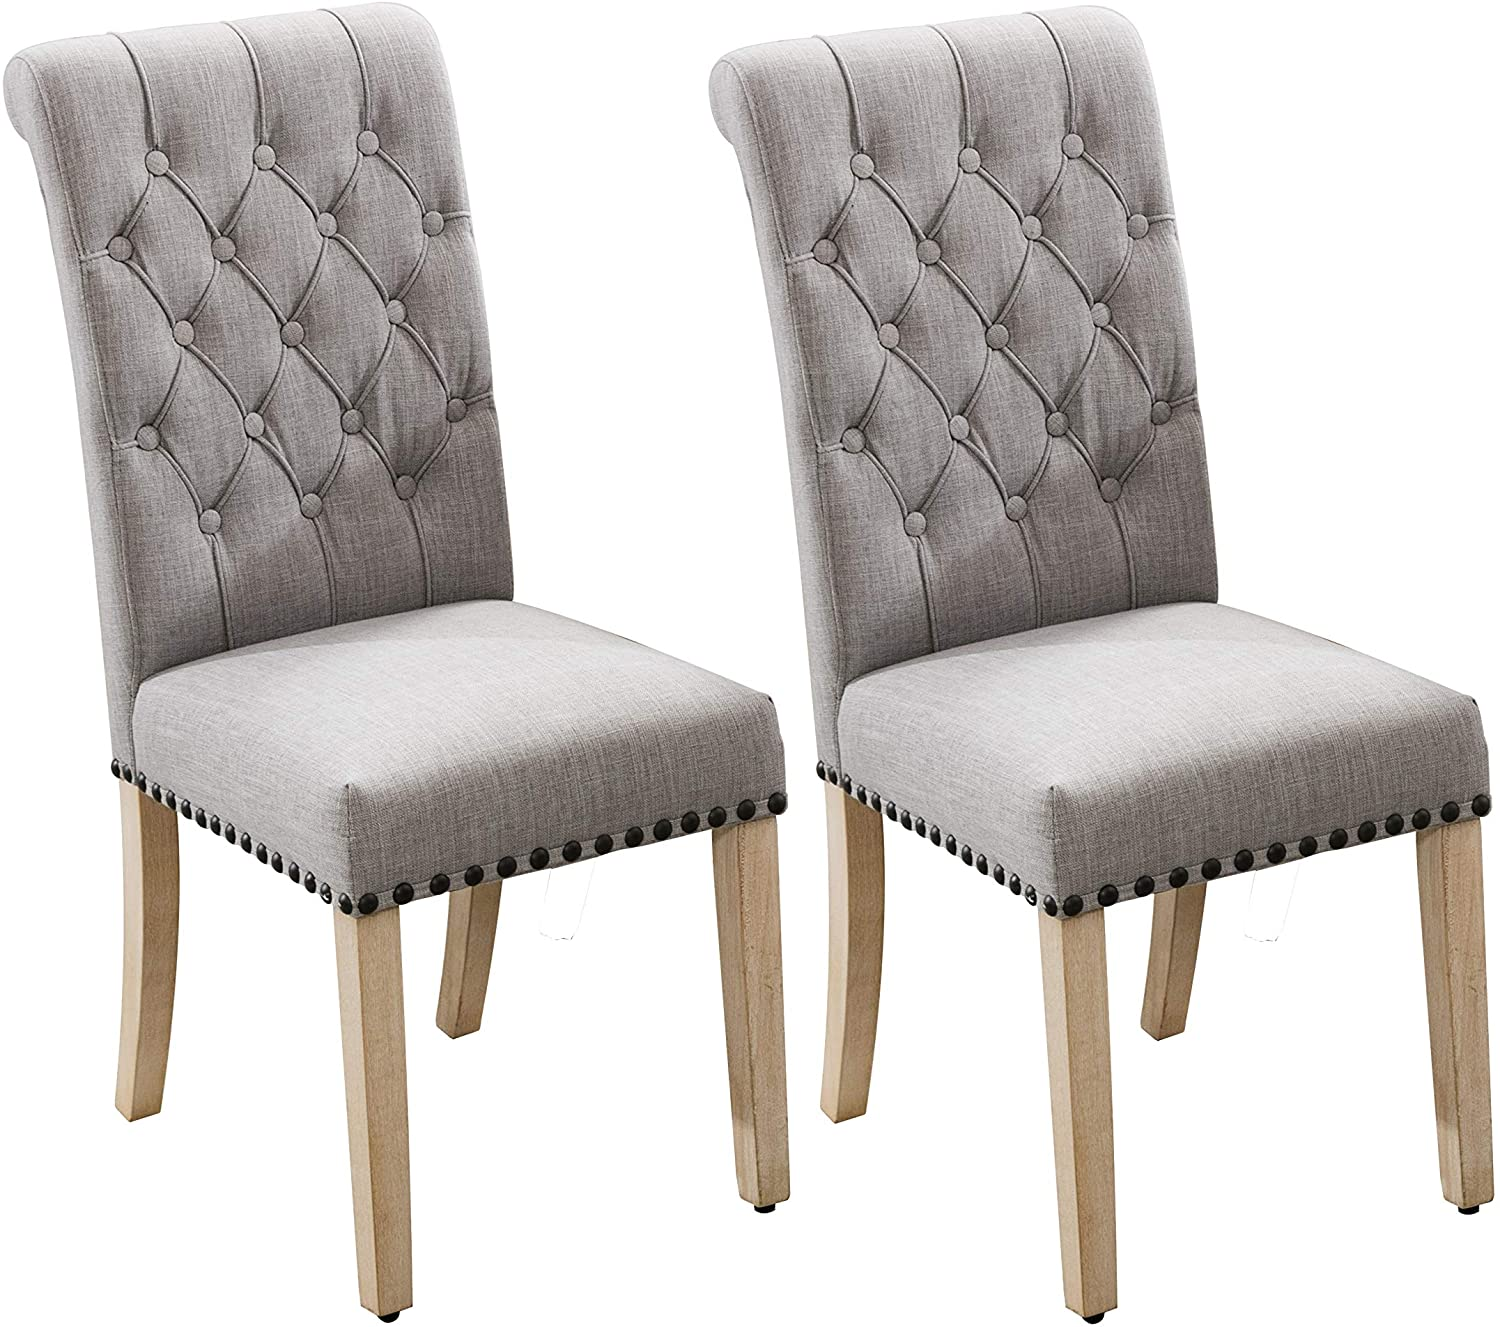 Luxuriour Fabric Dining Chairs,Pekko Kitchen Room with Copper Nails and  Solid Wood Legs Set of 3 (Grey+A)